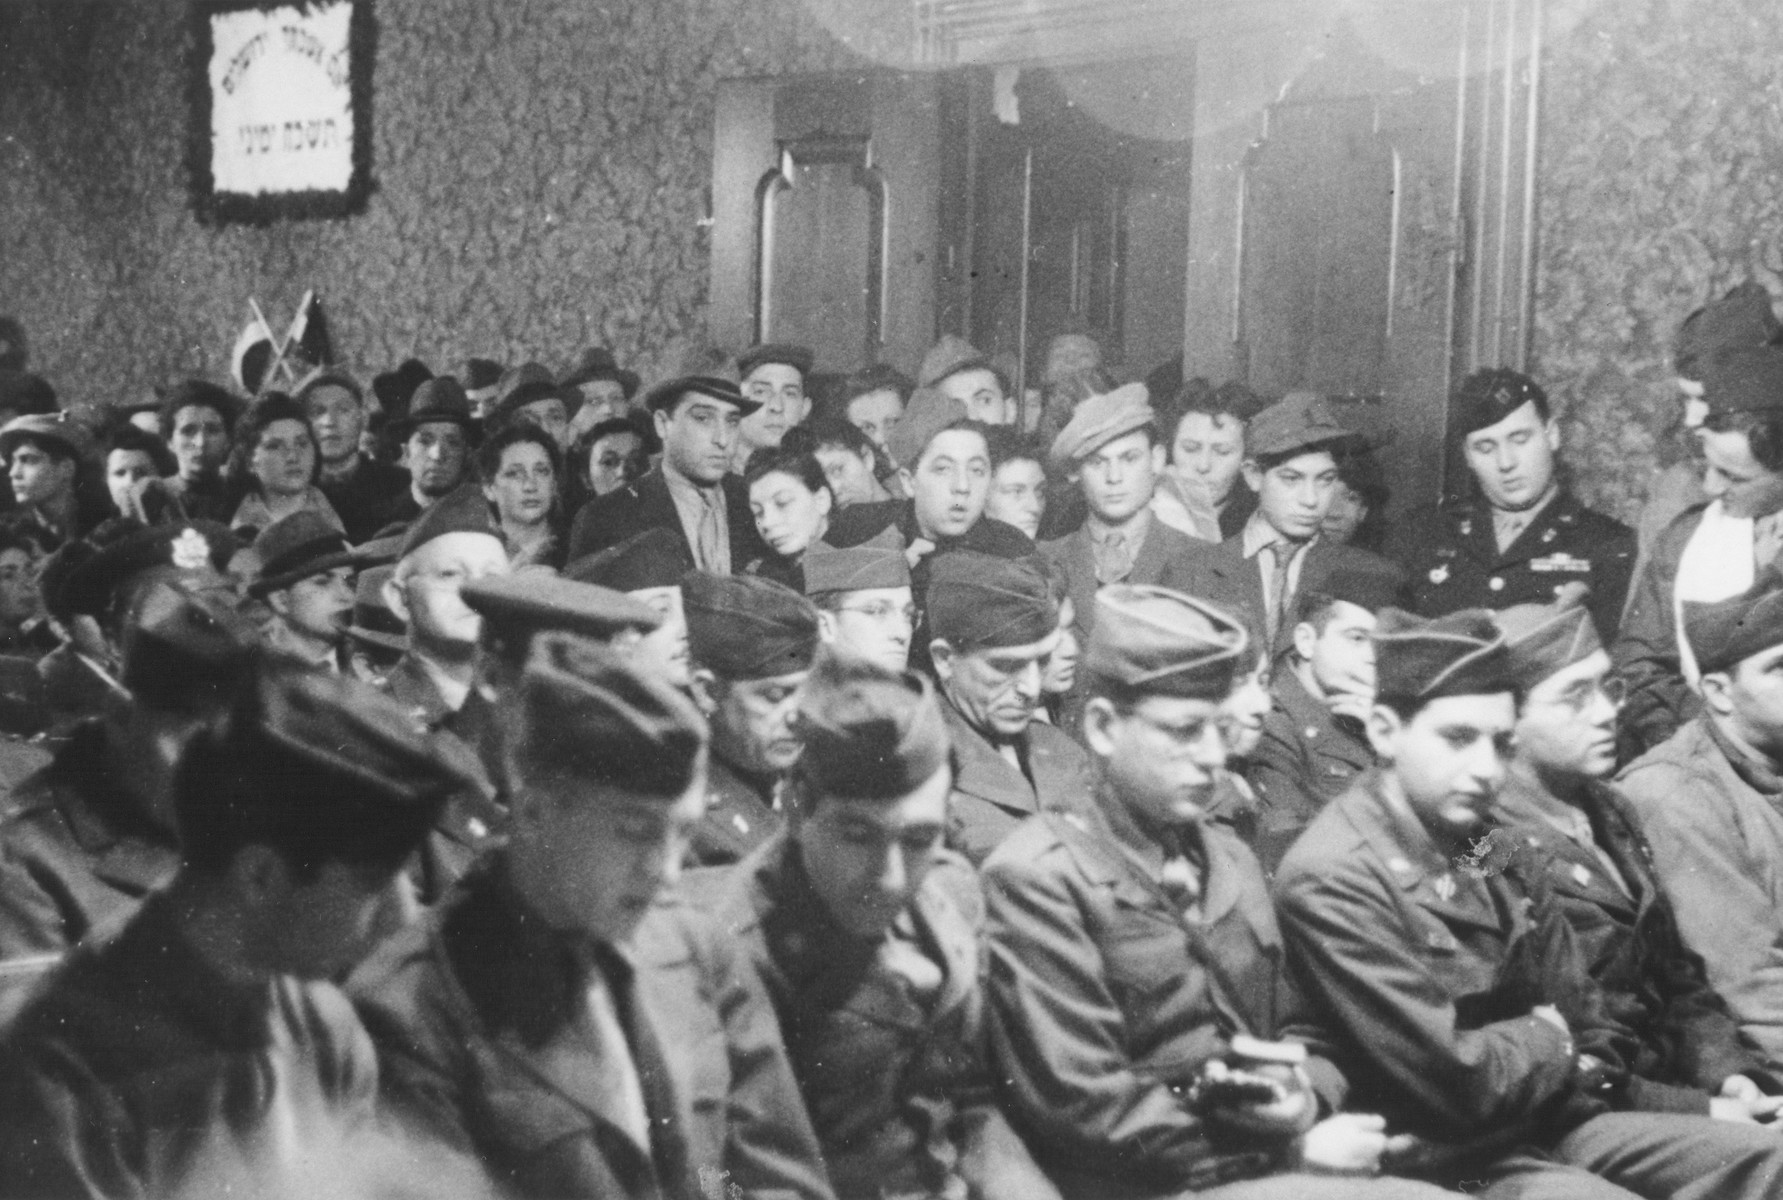 View of the audience of American soldiers and Jewish DPs at the rededication of a synagogue in Marburg.    The previous synagogue was destroyed during Kristallnacht.